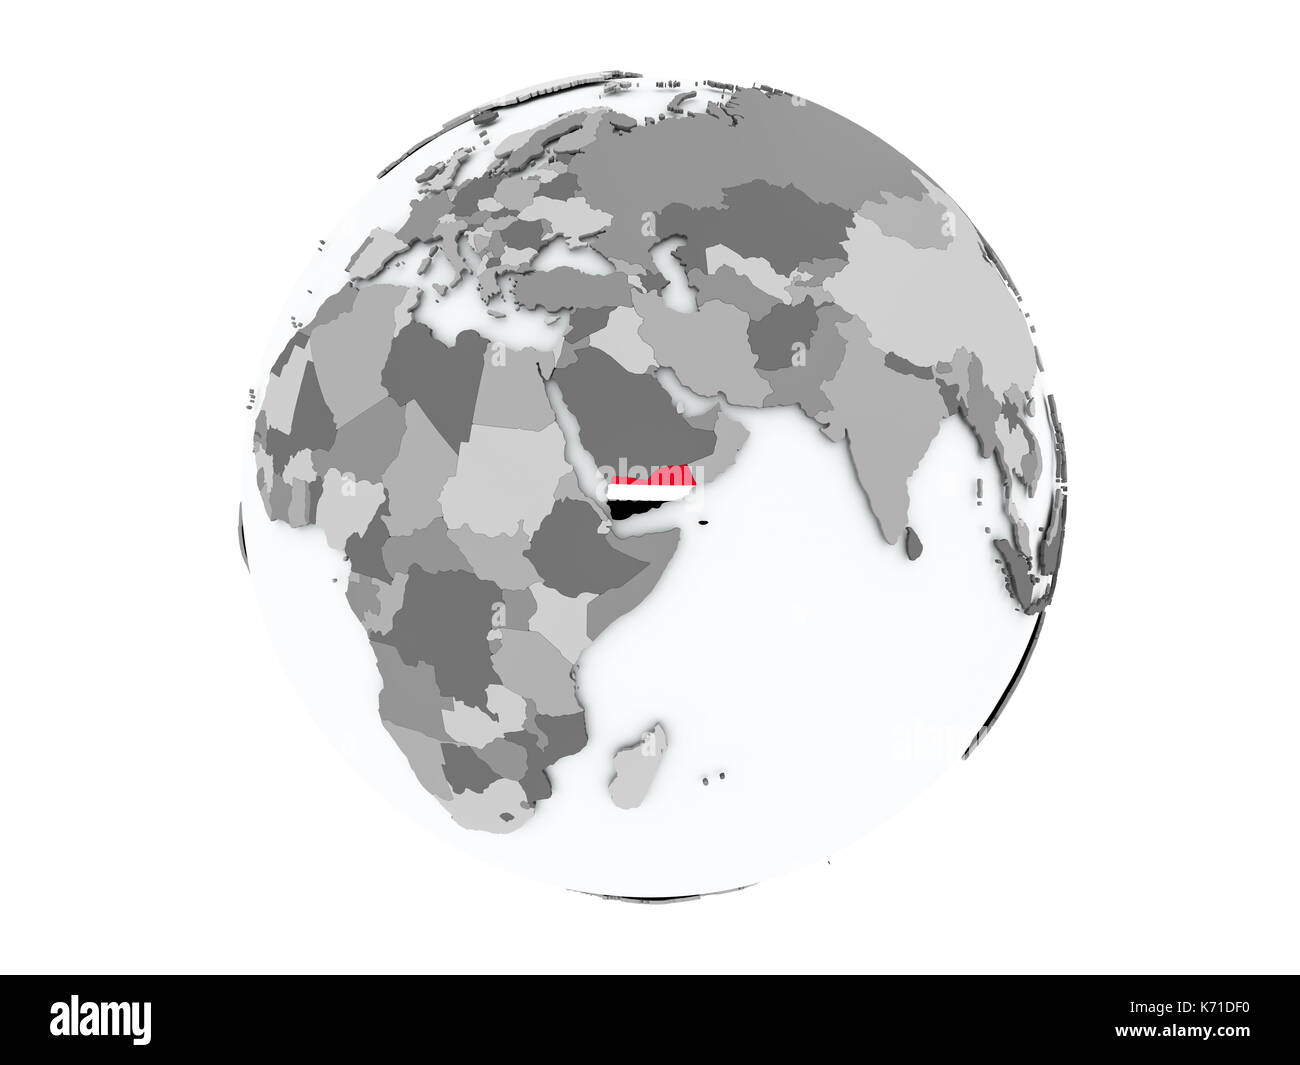 Yemen on political globe with embedded flags. 3D illustration isolated on white background. - Stock Image